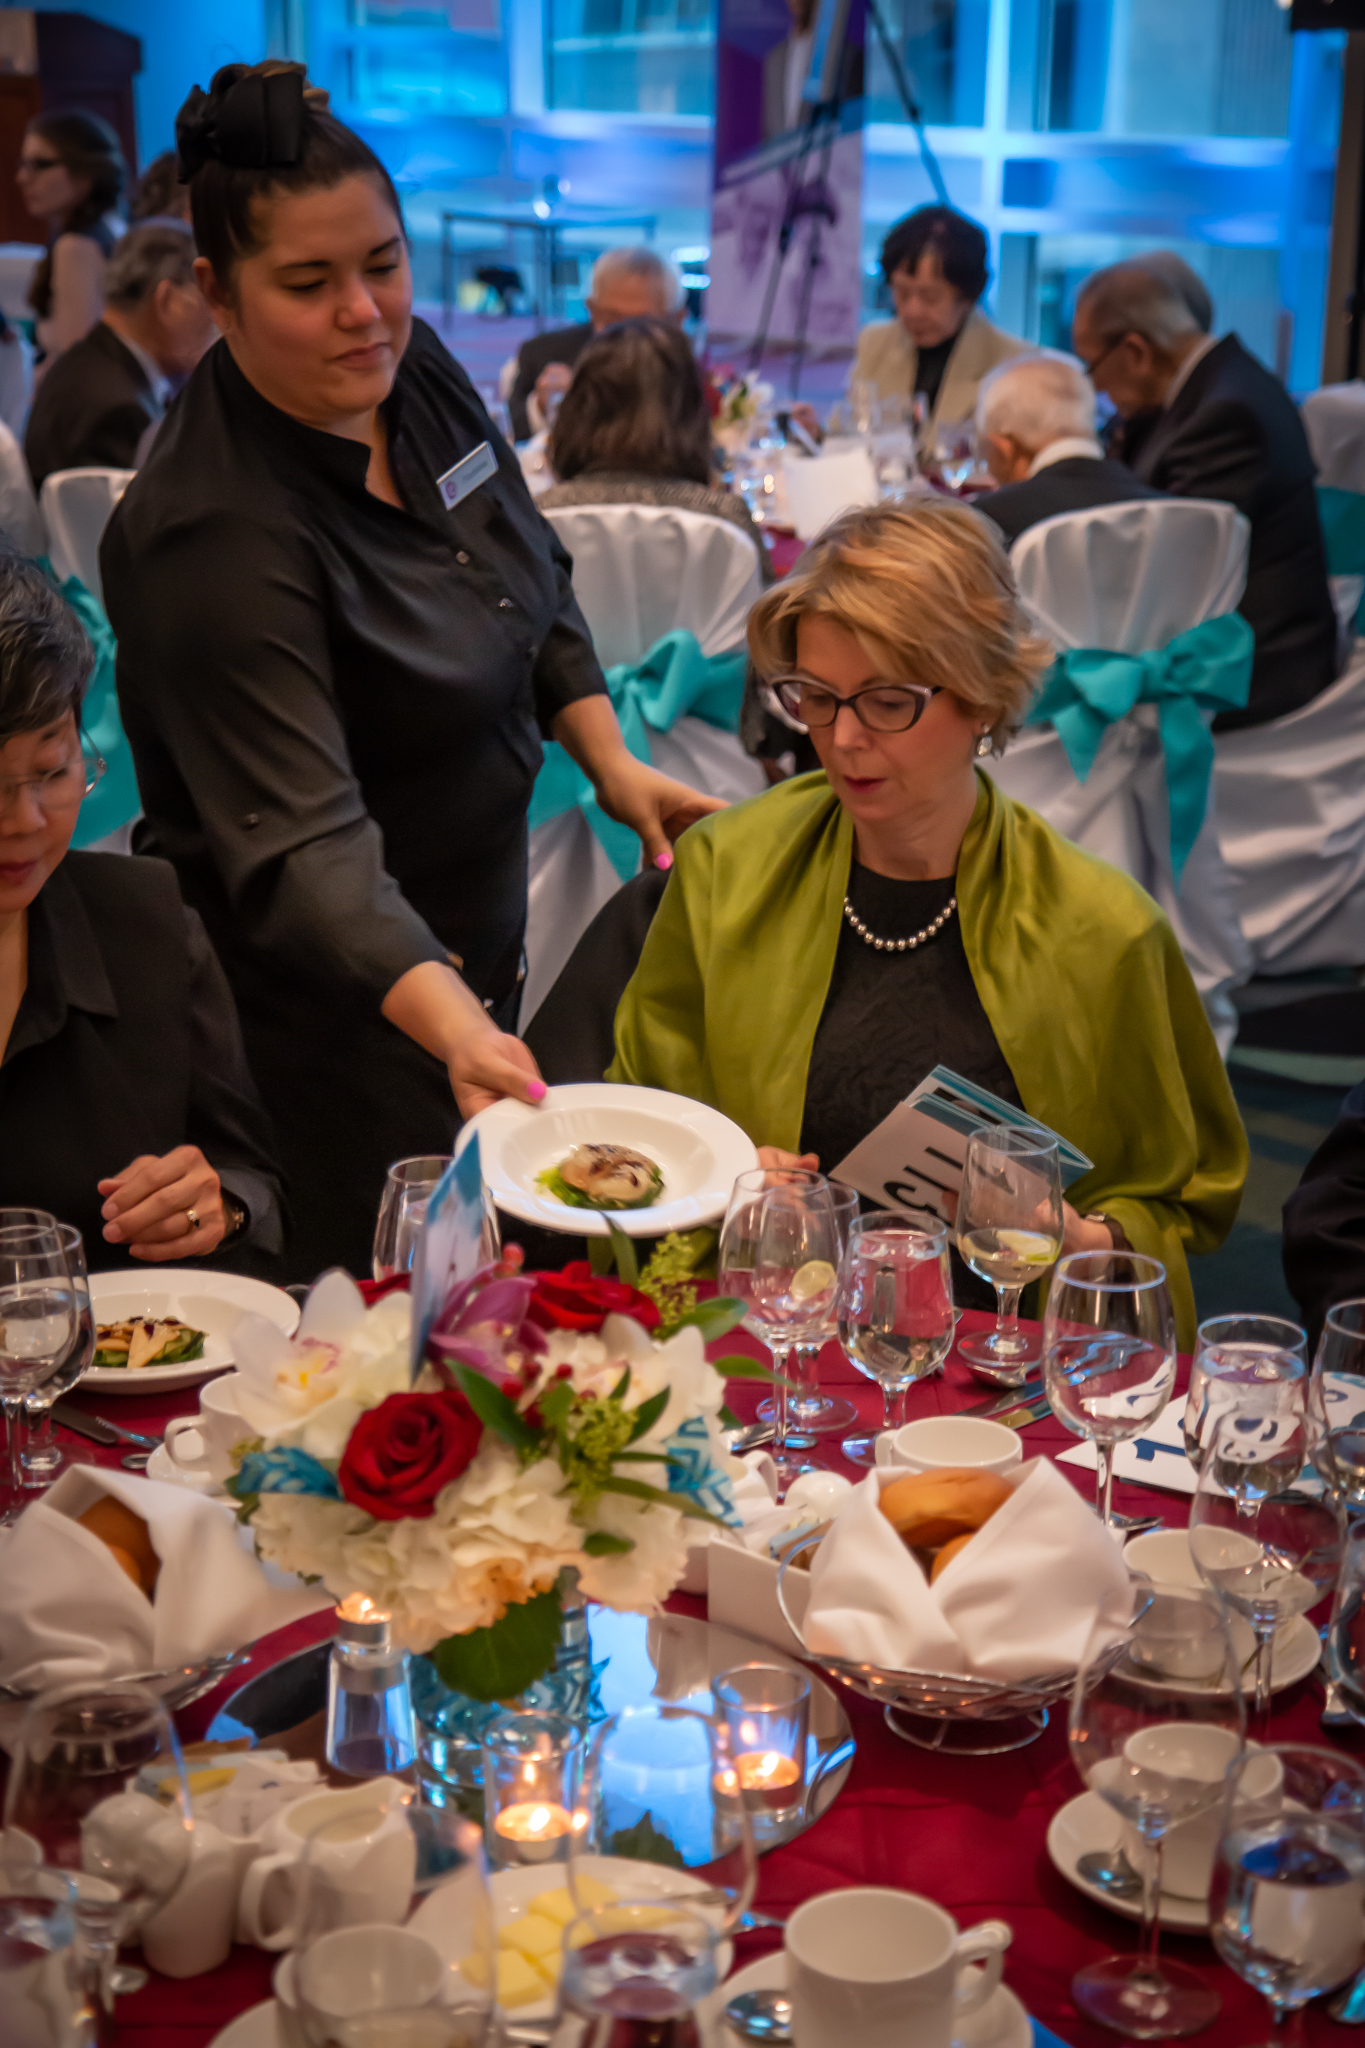 190310 Sakura Gala 2019 17-30-24 - Photo by Adam PW Smith.jpg